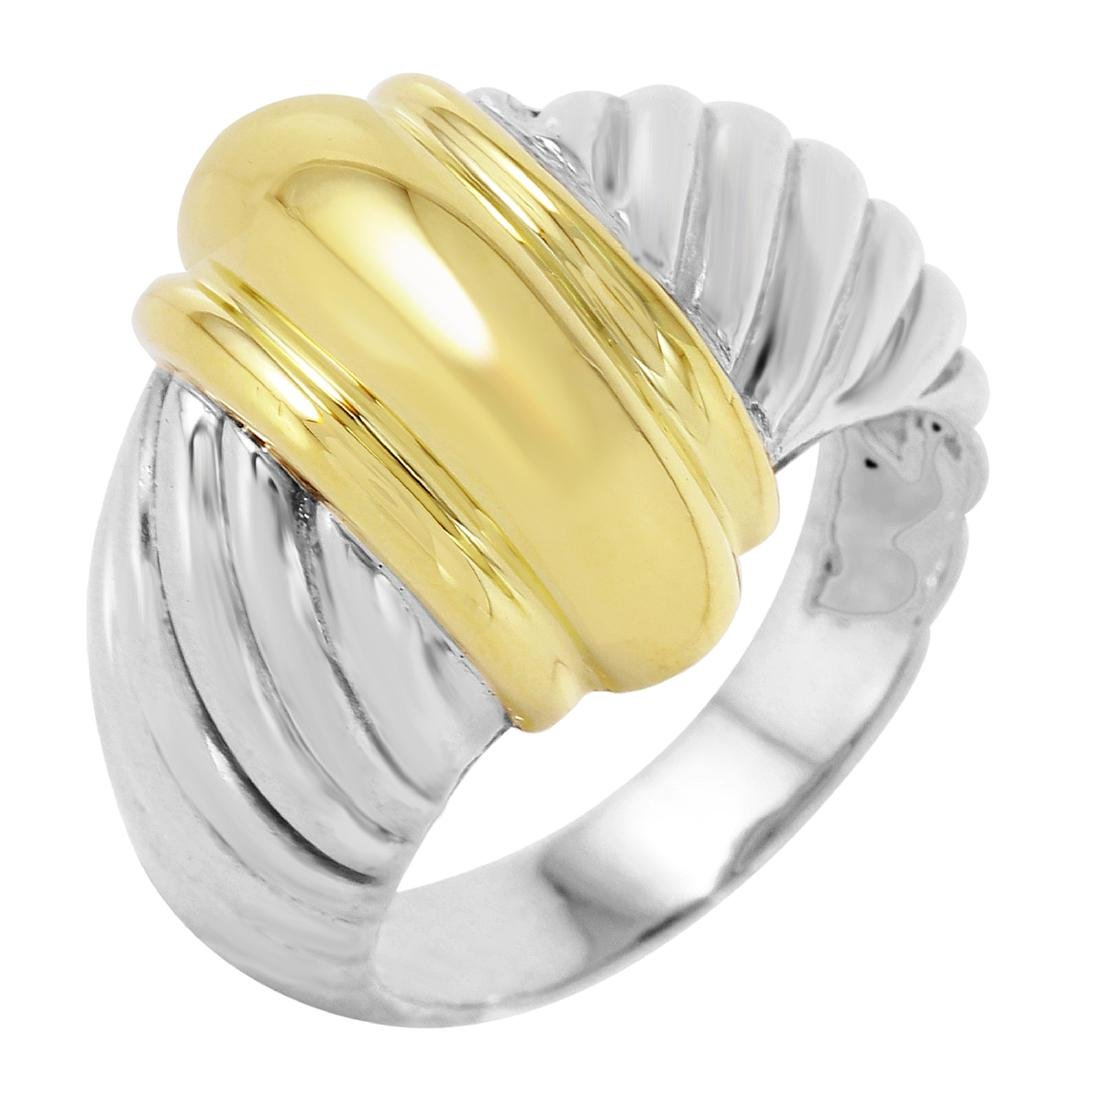 DAVID YURMAN Sterling Silver 18KT Gold Ring Size 5.5